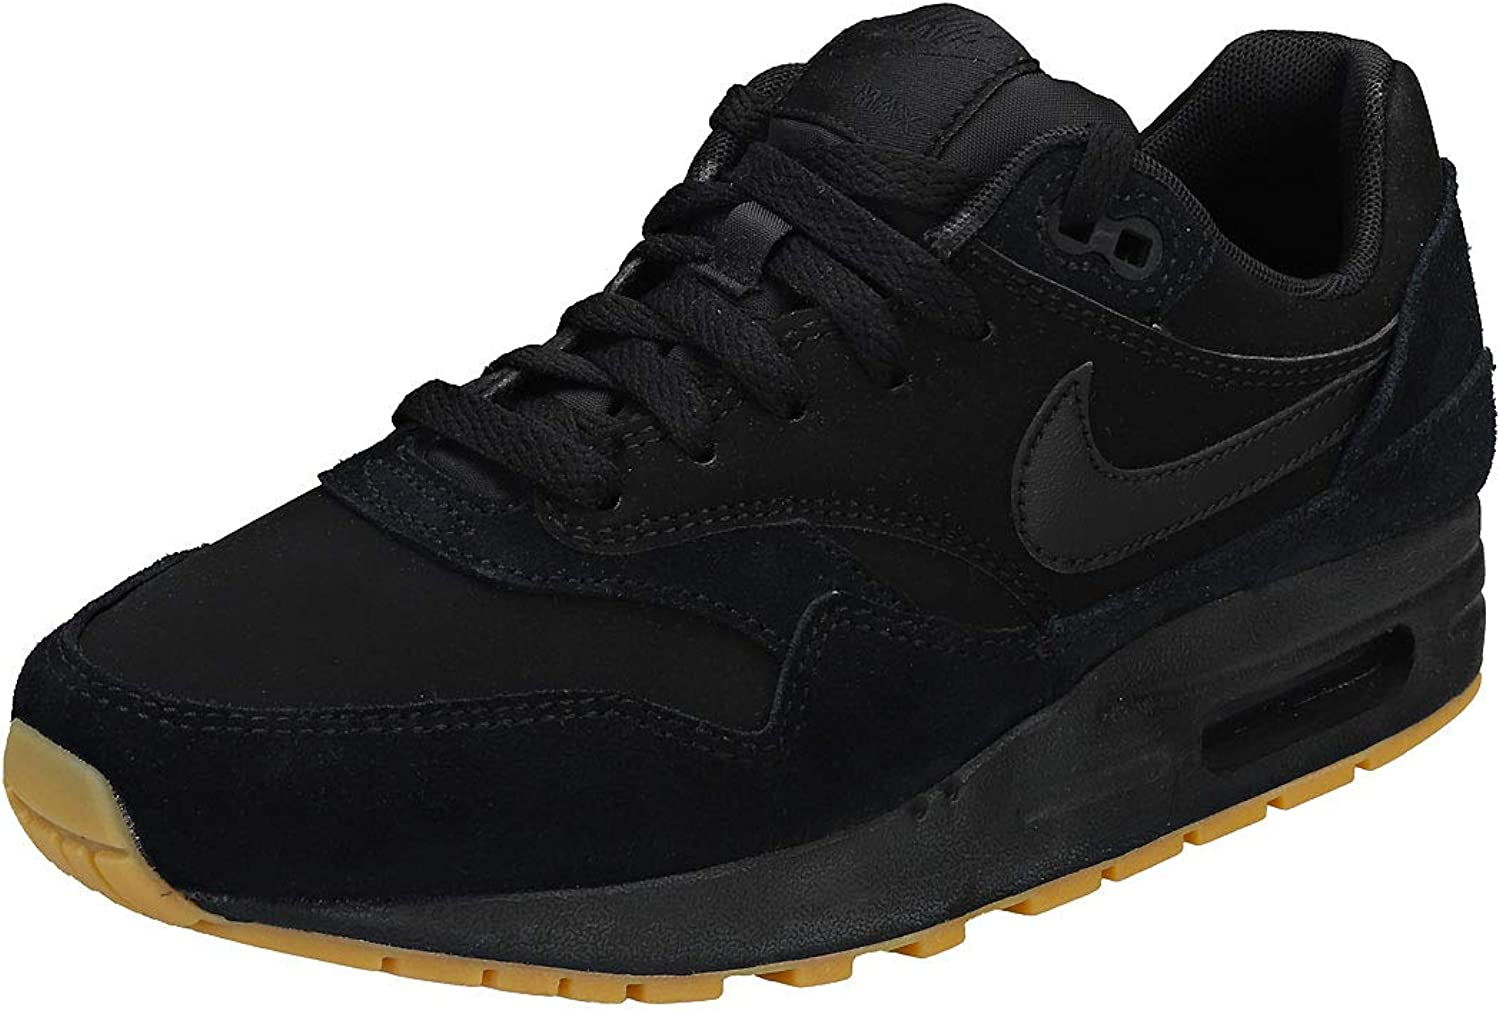 Nike Men's's Air Max 1 (Gs) Low-Top Sneakers